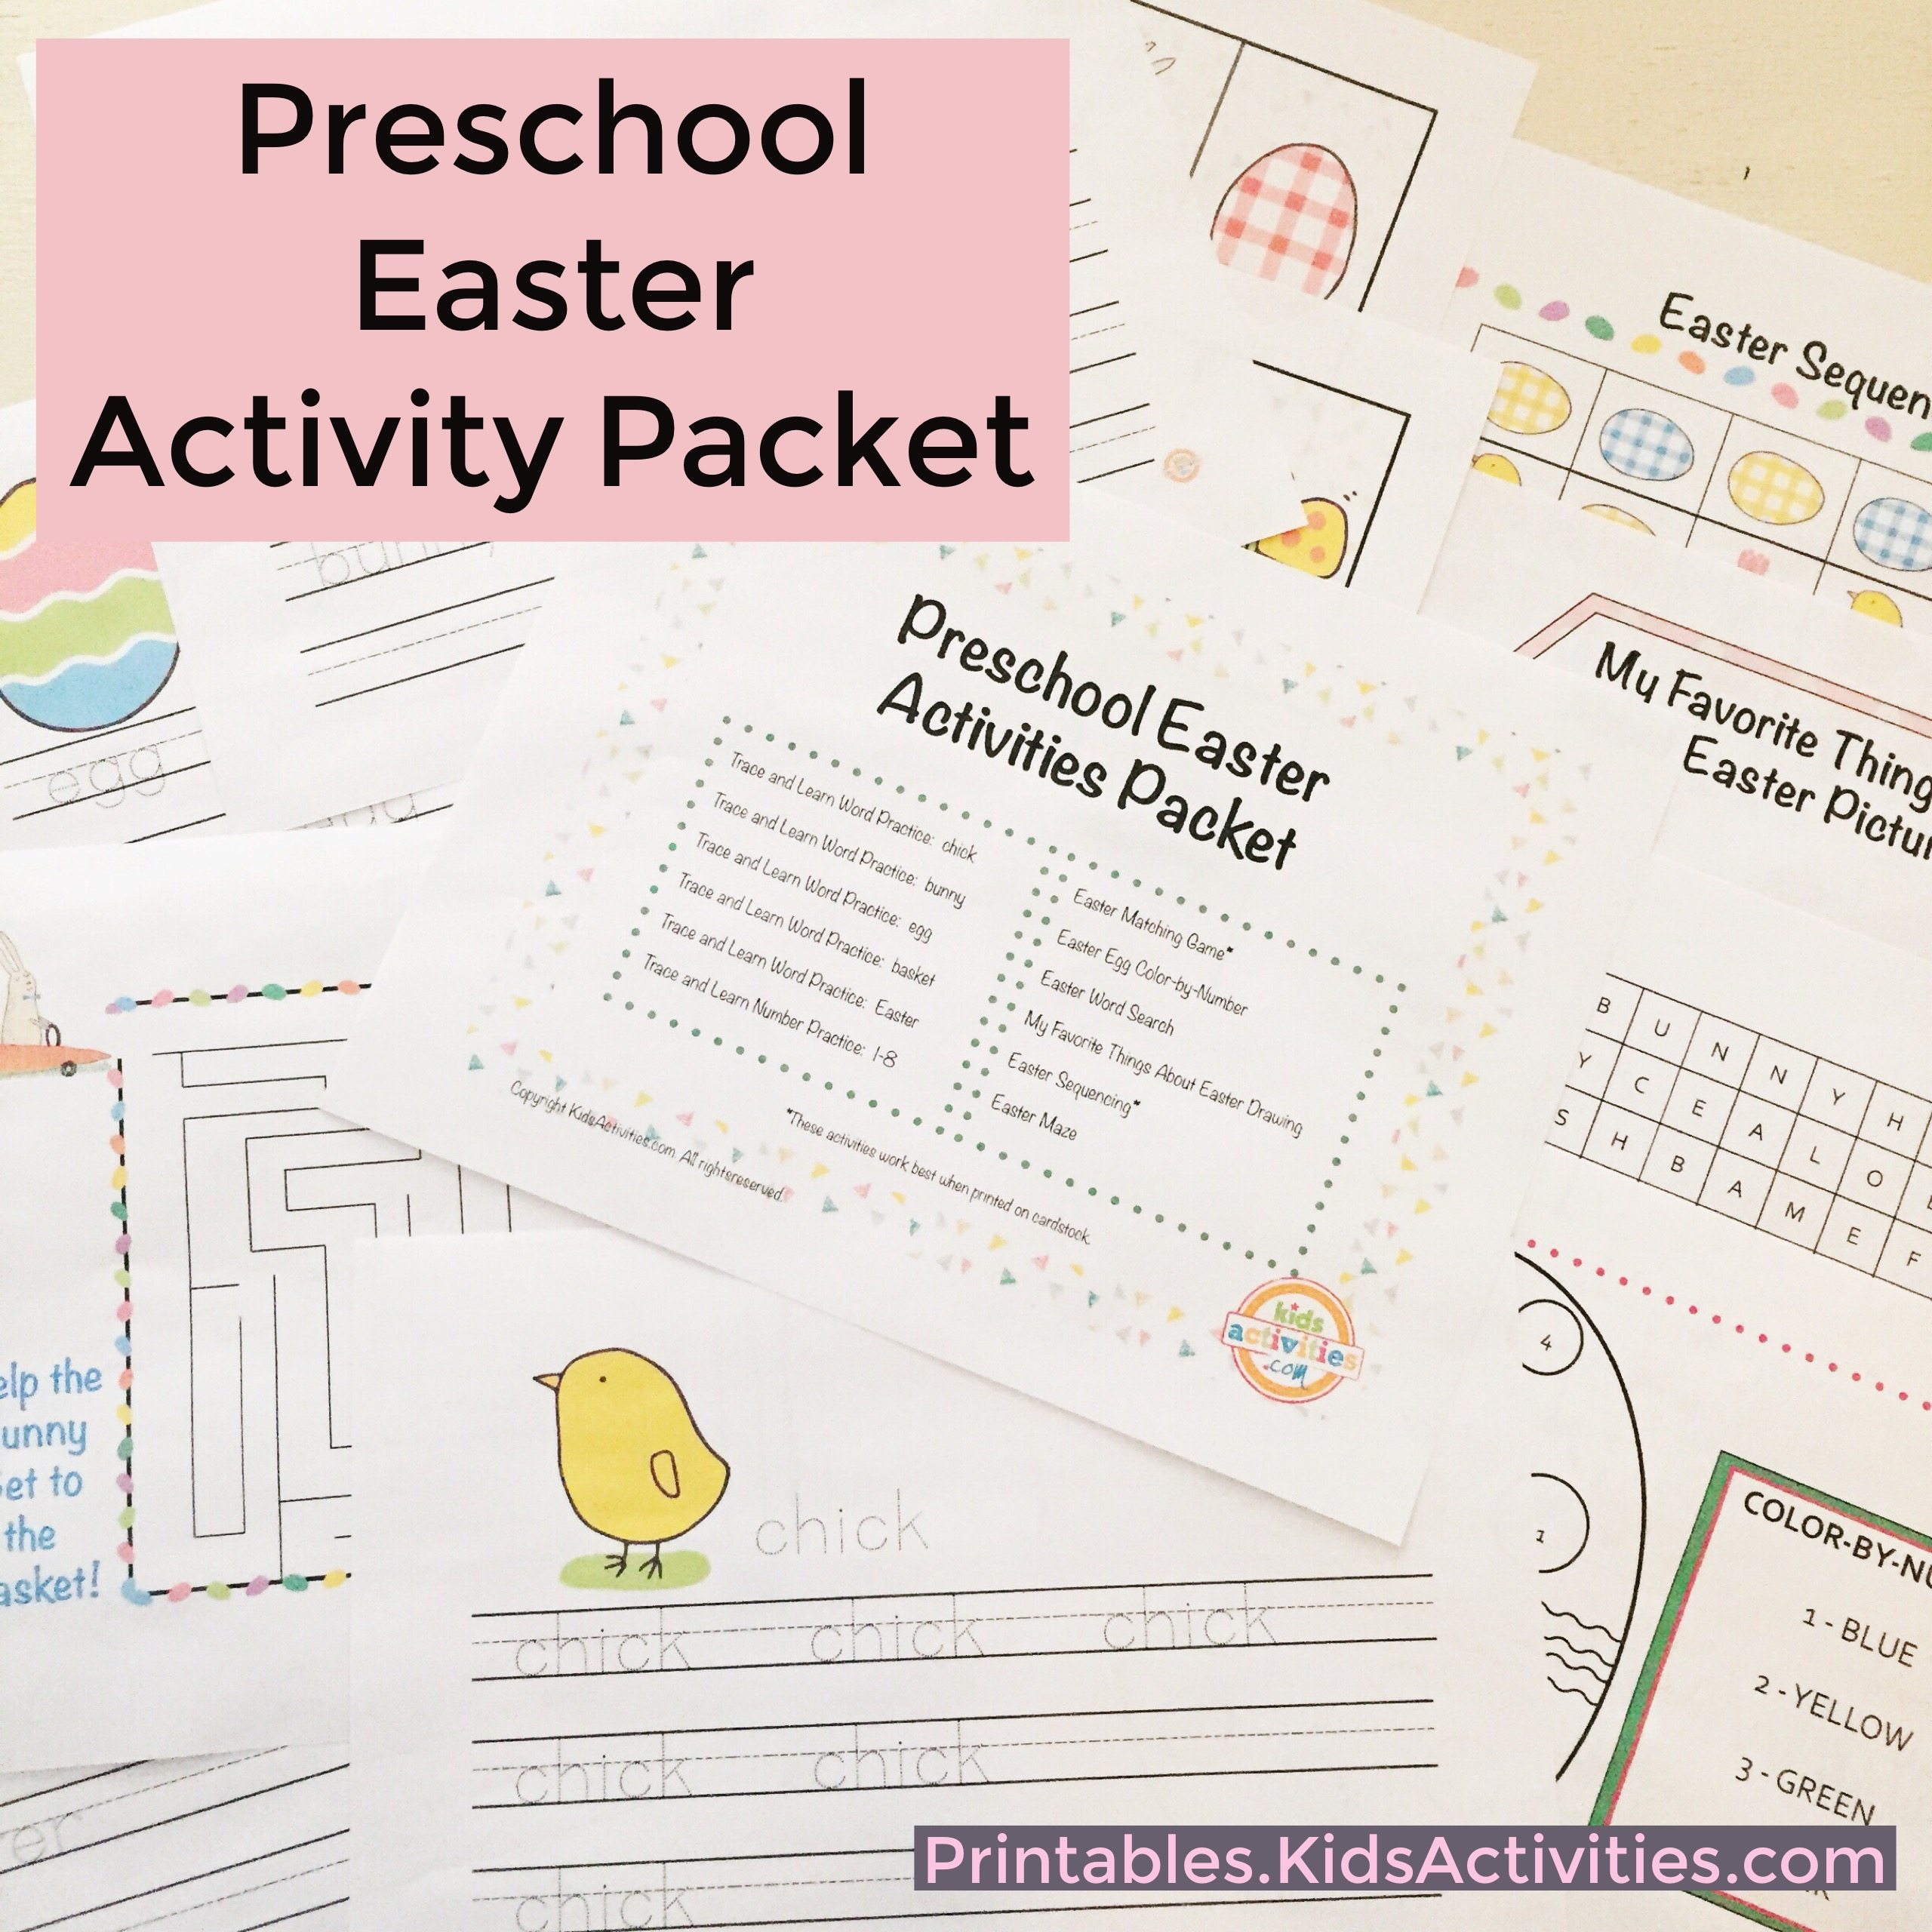 Preschool Easter Activity Packet - Printables.KidsActivities.com